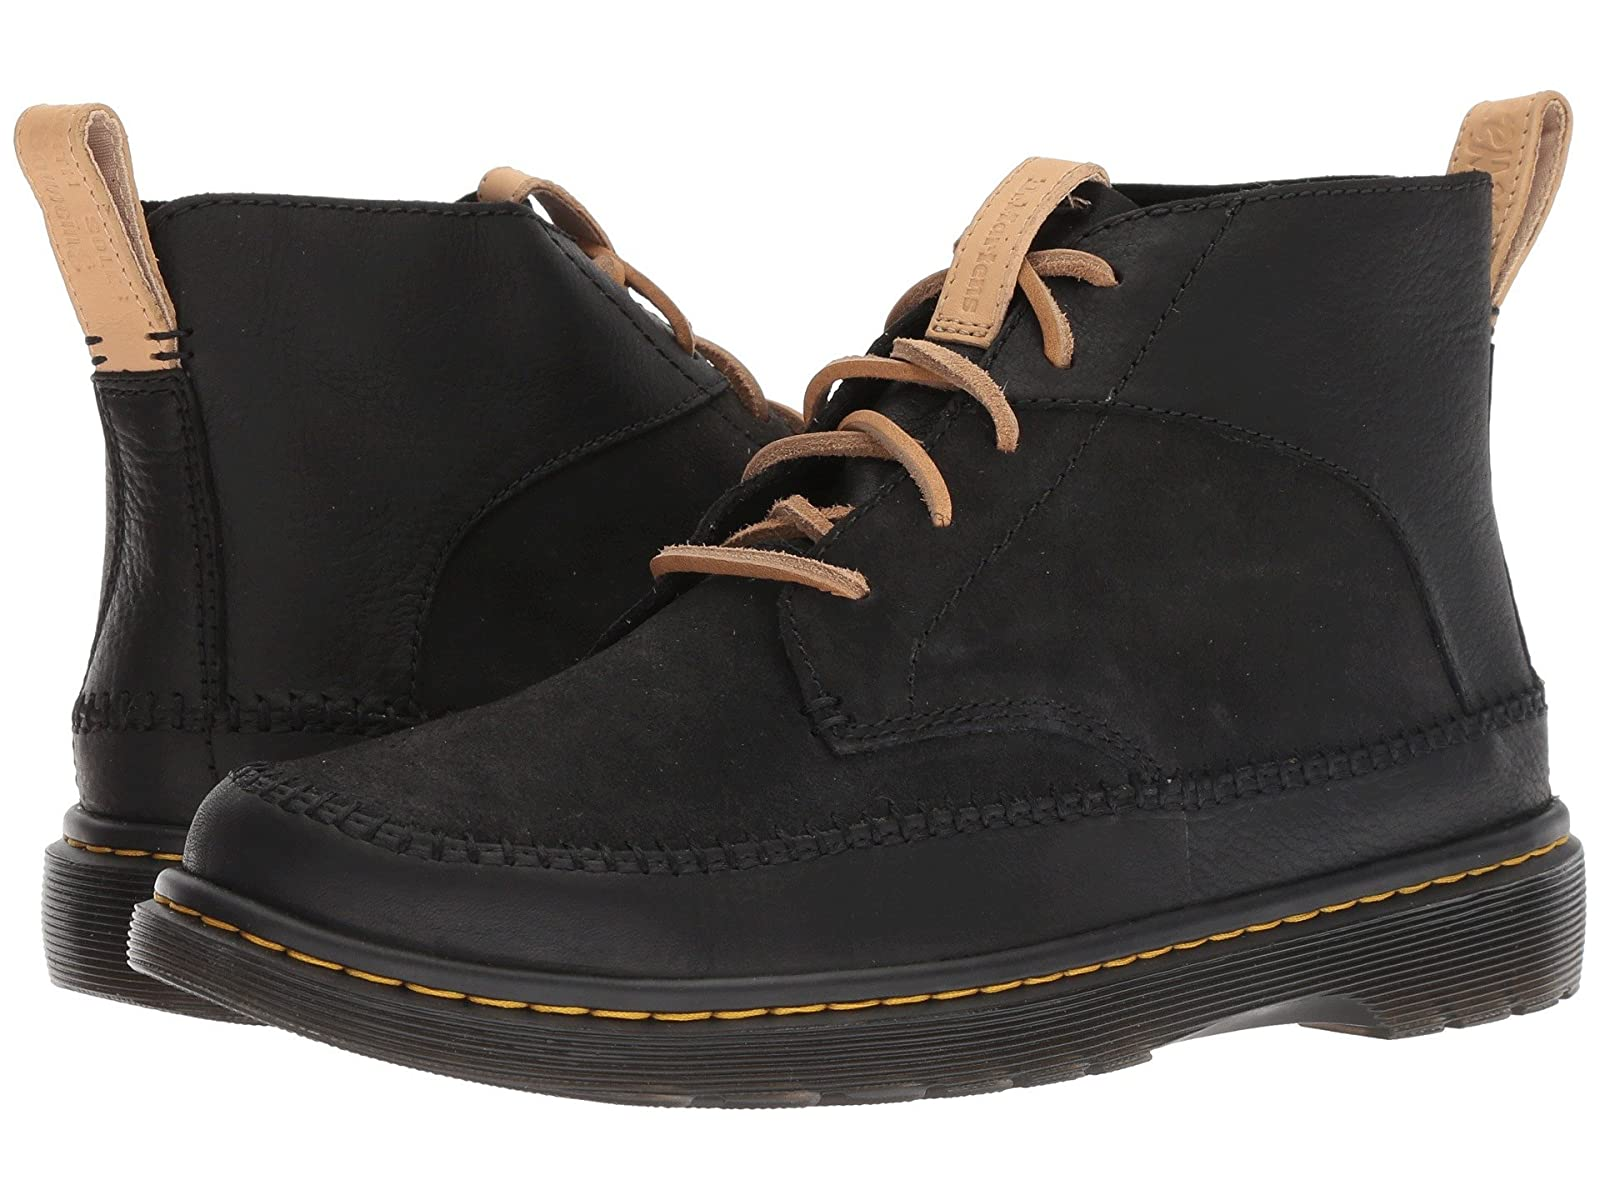 Dr. Martens Flloyd ReviveAffordable and distinctive shoes